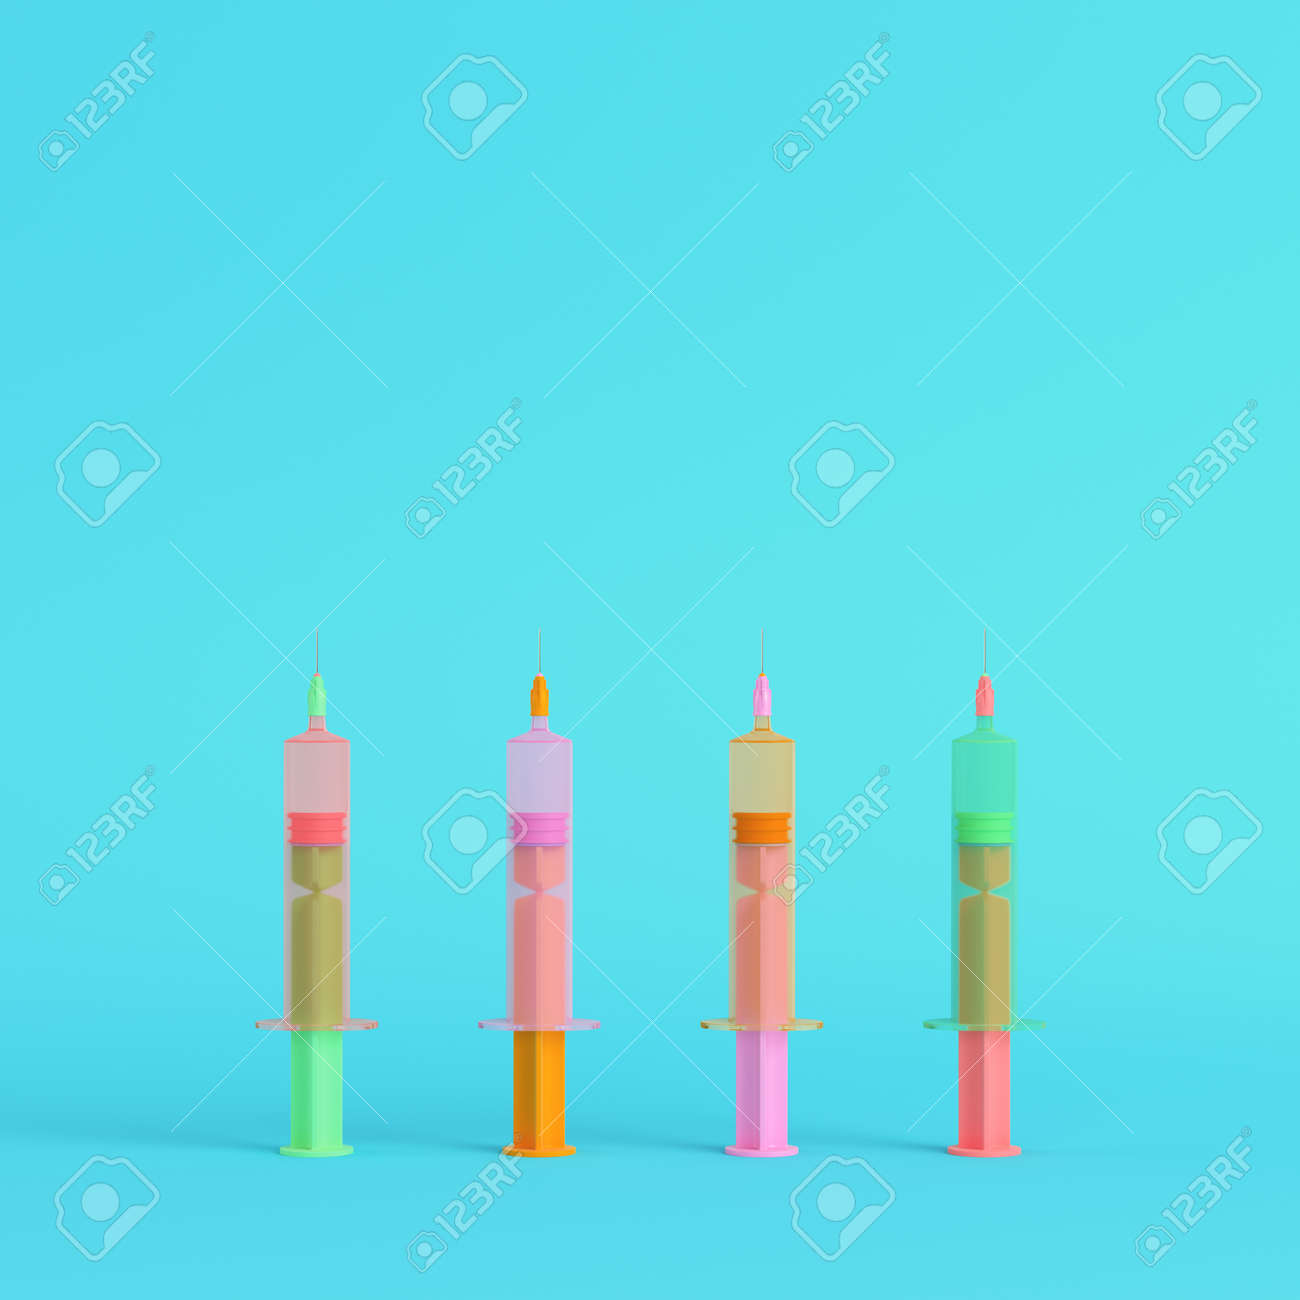 Pink syringe with vaccine on bright blue background in pastel colors. Minimalism concept. 3d render - 169043203